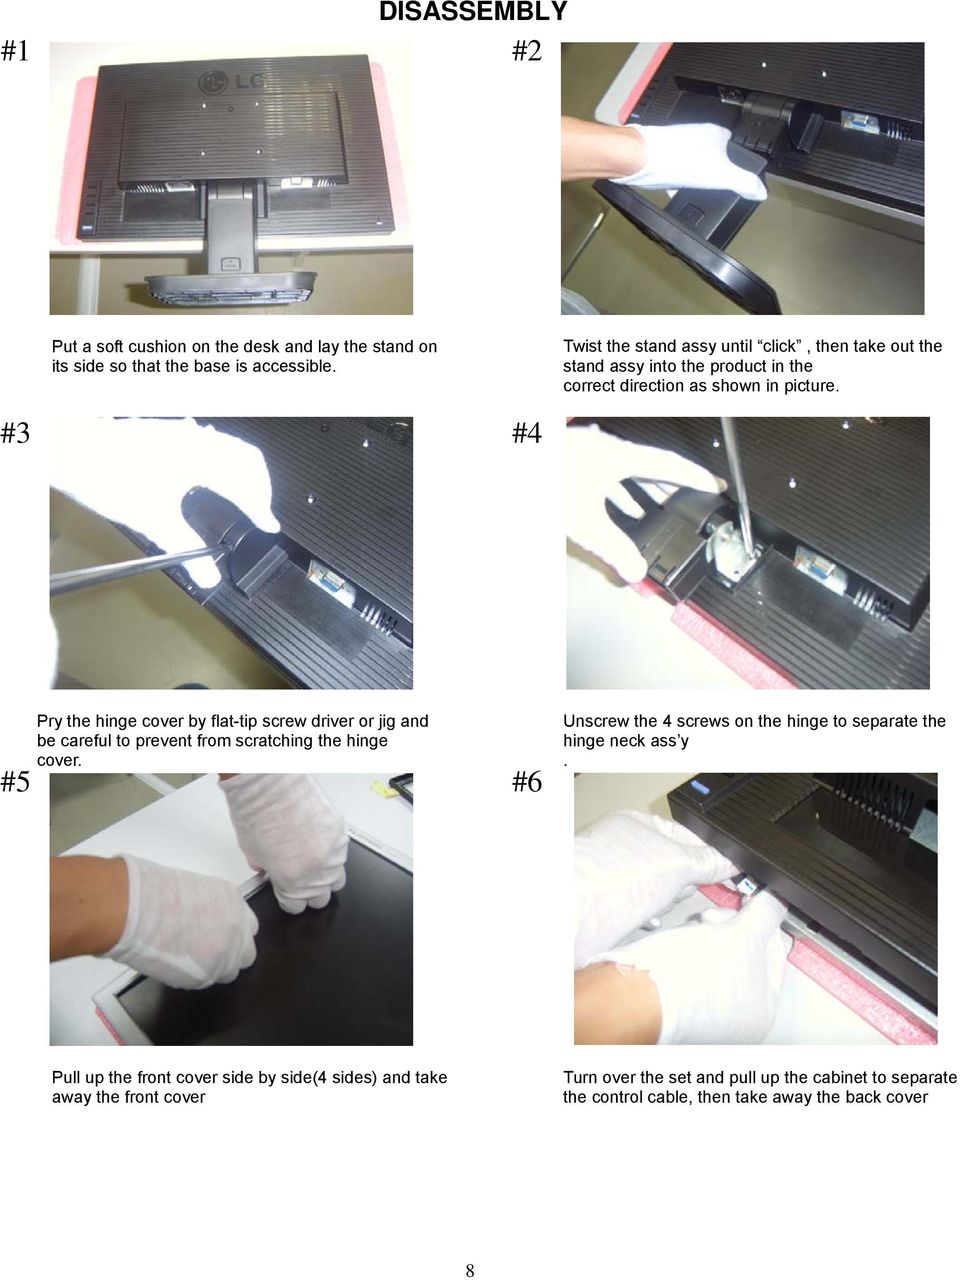 #3 #4 #5 Pry the hinge cover by flat-tip screw driver or jig and be careful to prevent from scratching the hinge cover.